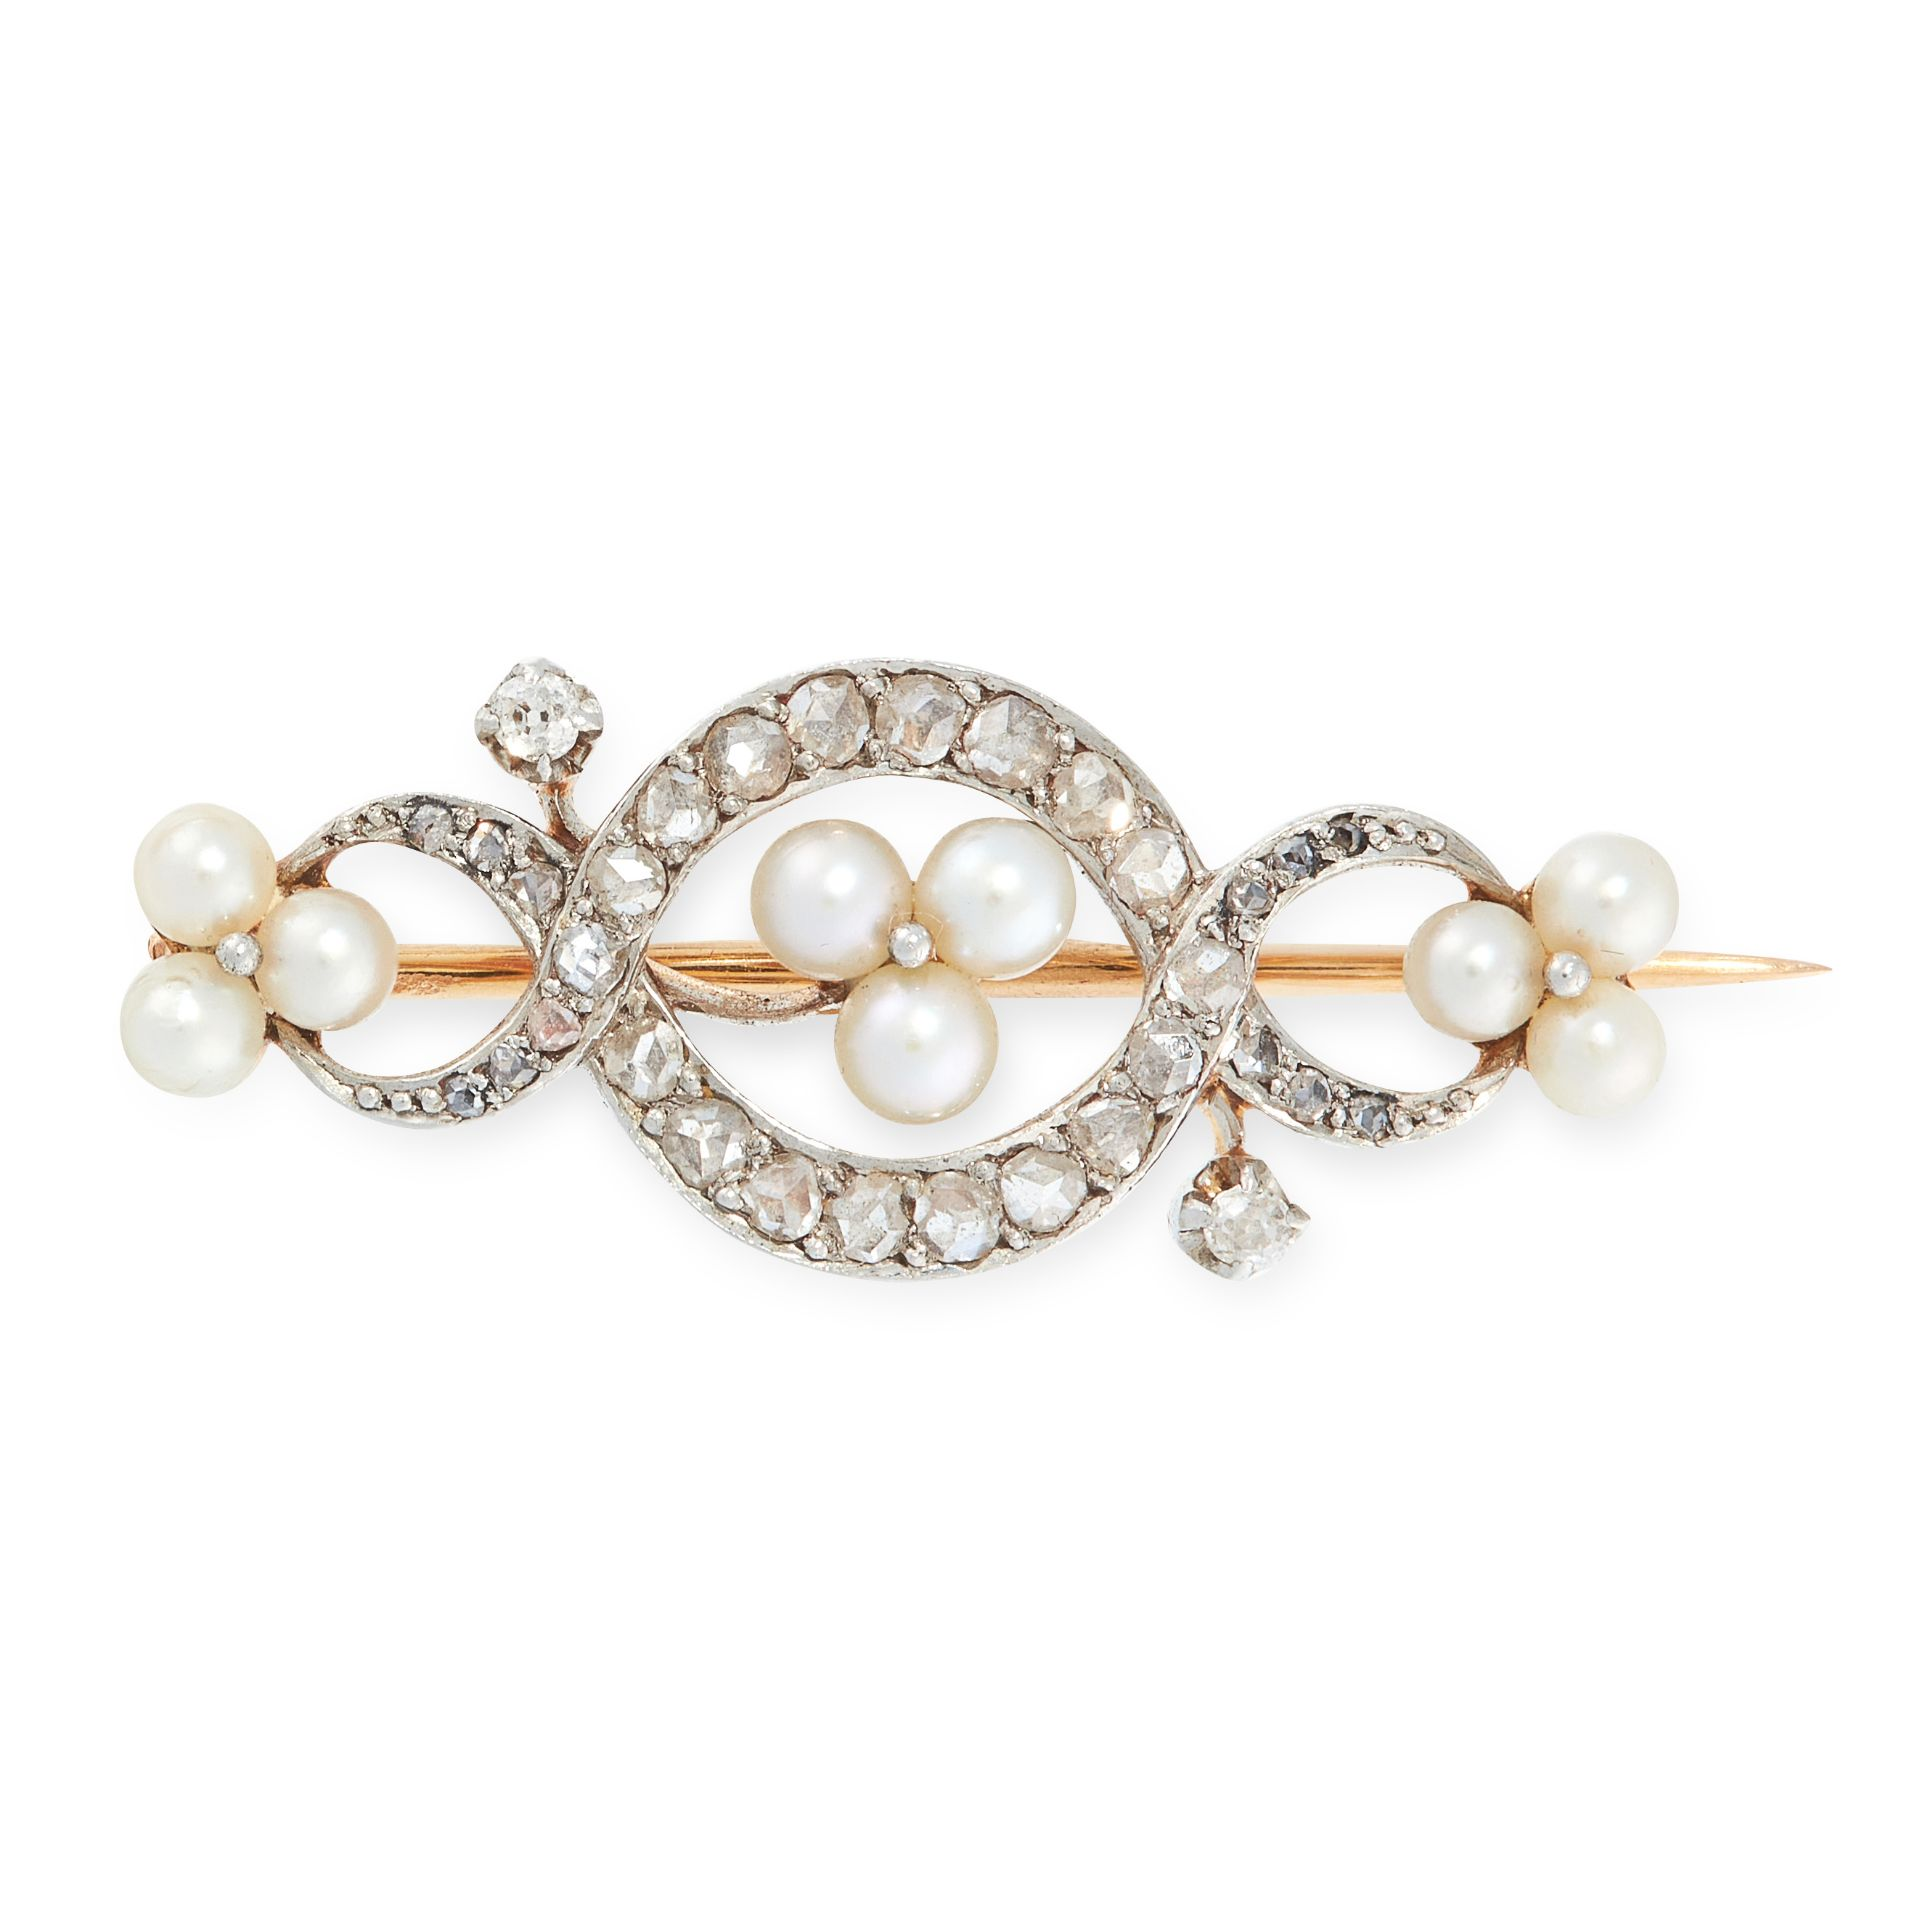 AN ANTIQUE PEARL AND DIAMOND BROOCH in yellow gold and silver, set with a central trio of pearls